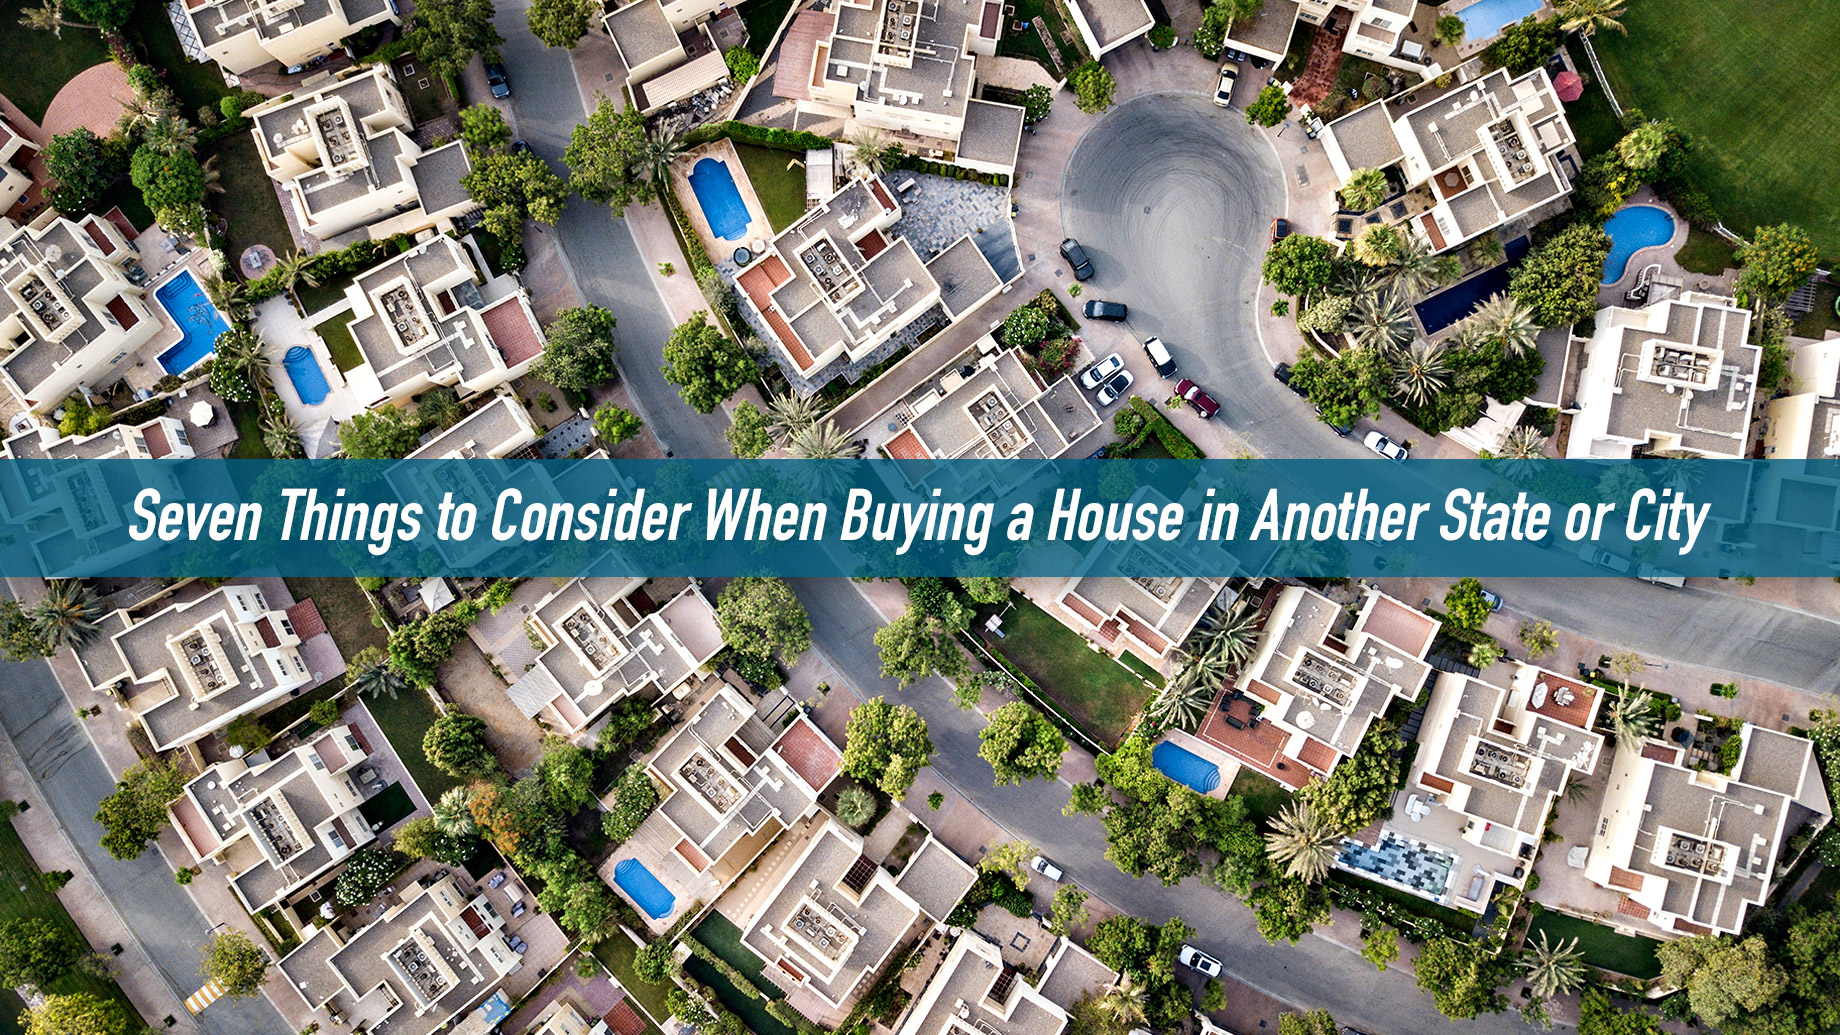 Seven Things to Consider When Buying a House in Another State or City